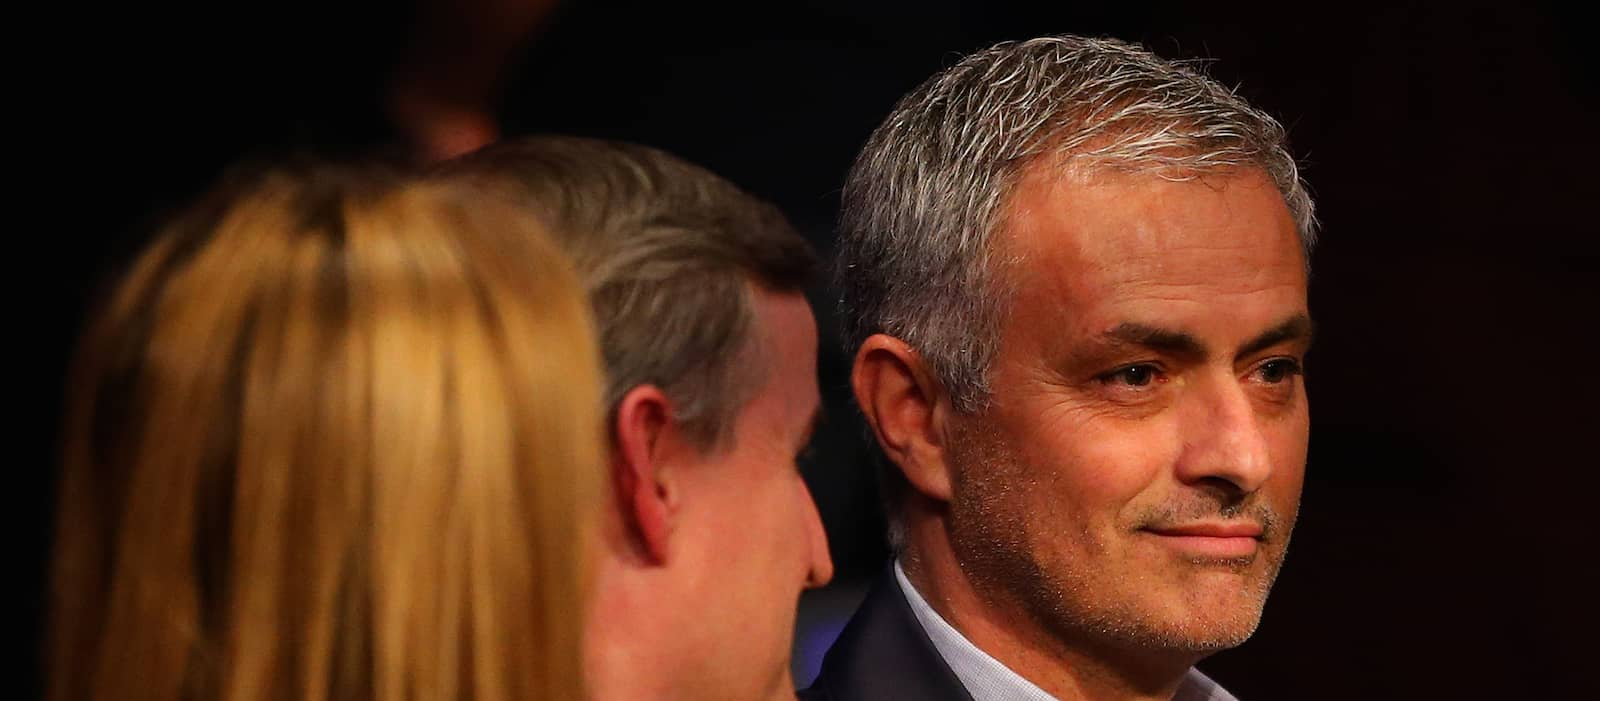 Jose Mourinho has agreed in principle to become Man United manager – report